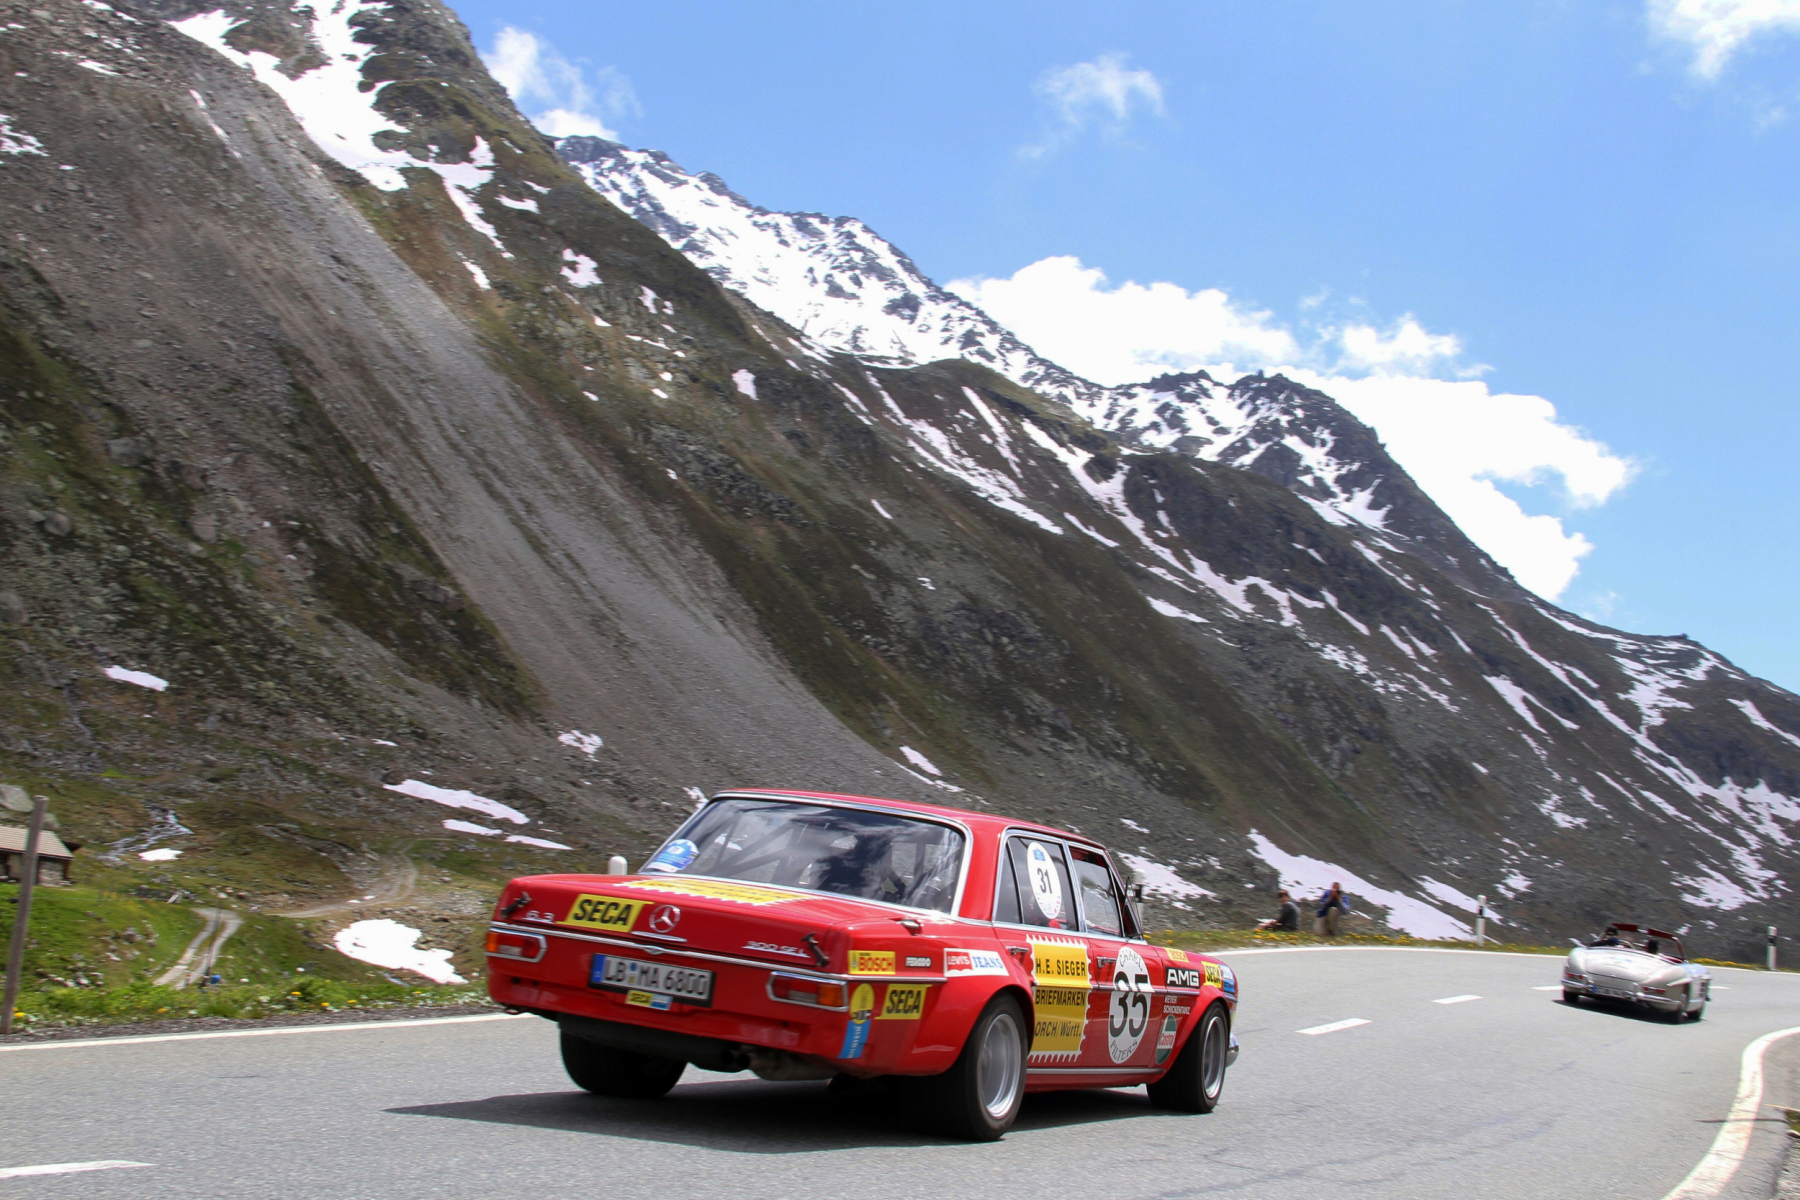 AMG 300 SEL 6.8 racing touring car based on the Mercedes-Benz 300 SEL 6.3 (W 109) luxury saloon, detailed reconstruction from 2006. Photo of the Silvretta Classic Rallye Montafon in 2013.